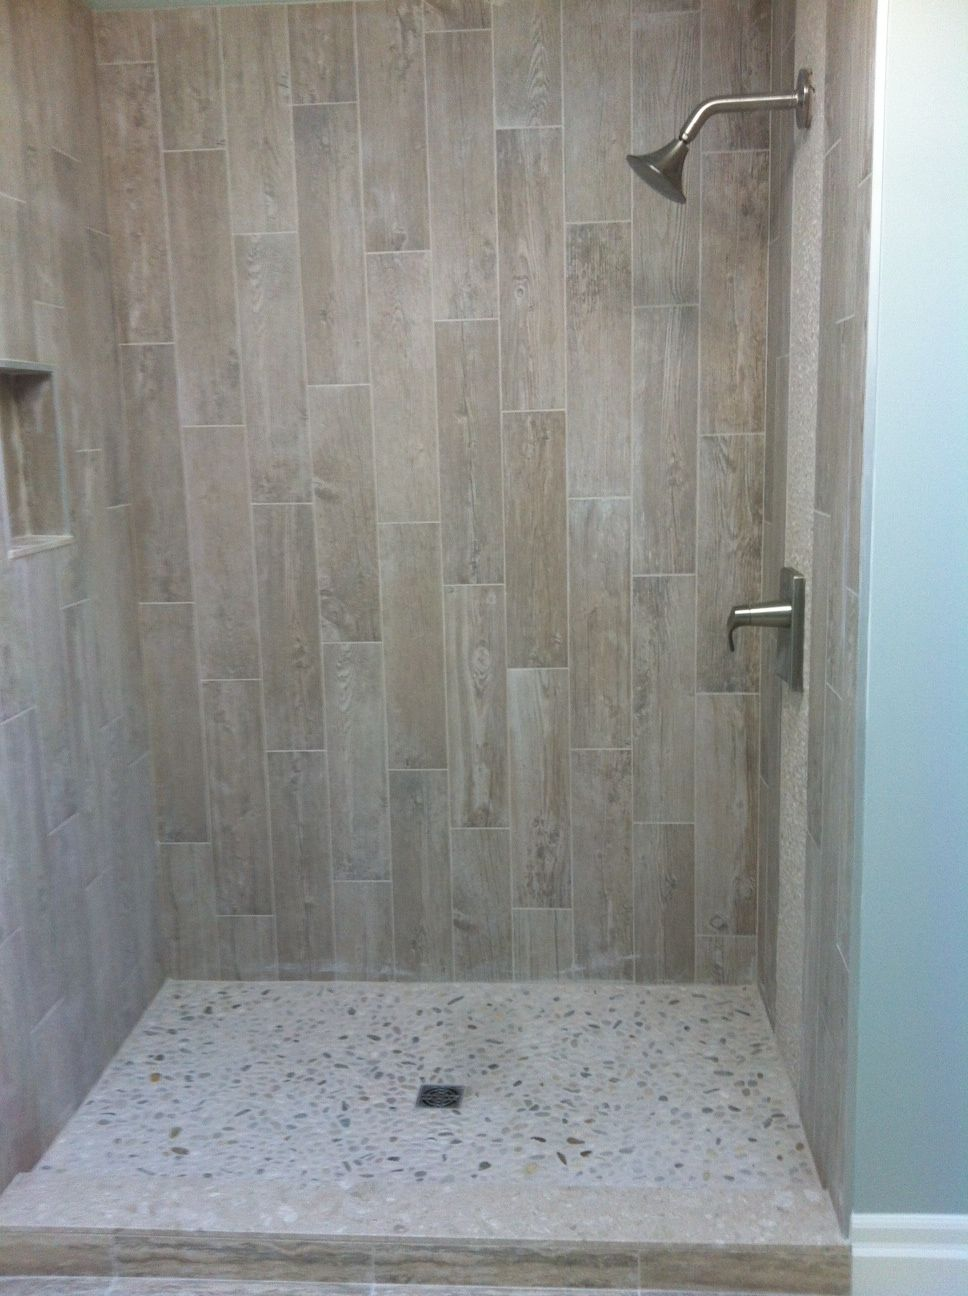 Wood Grain Tile With River Rock Wood Tile Shower Shower Tile Bathroom Shower Design